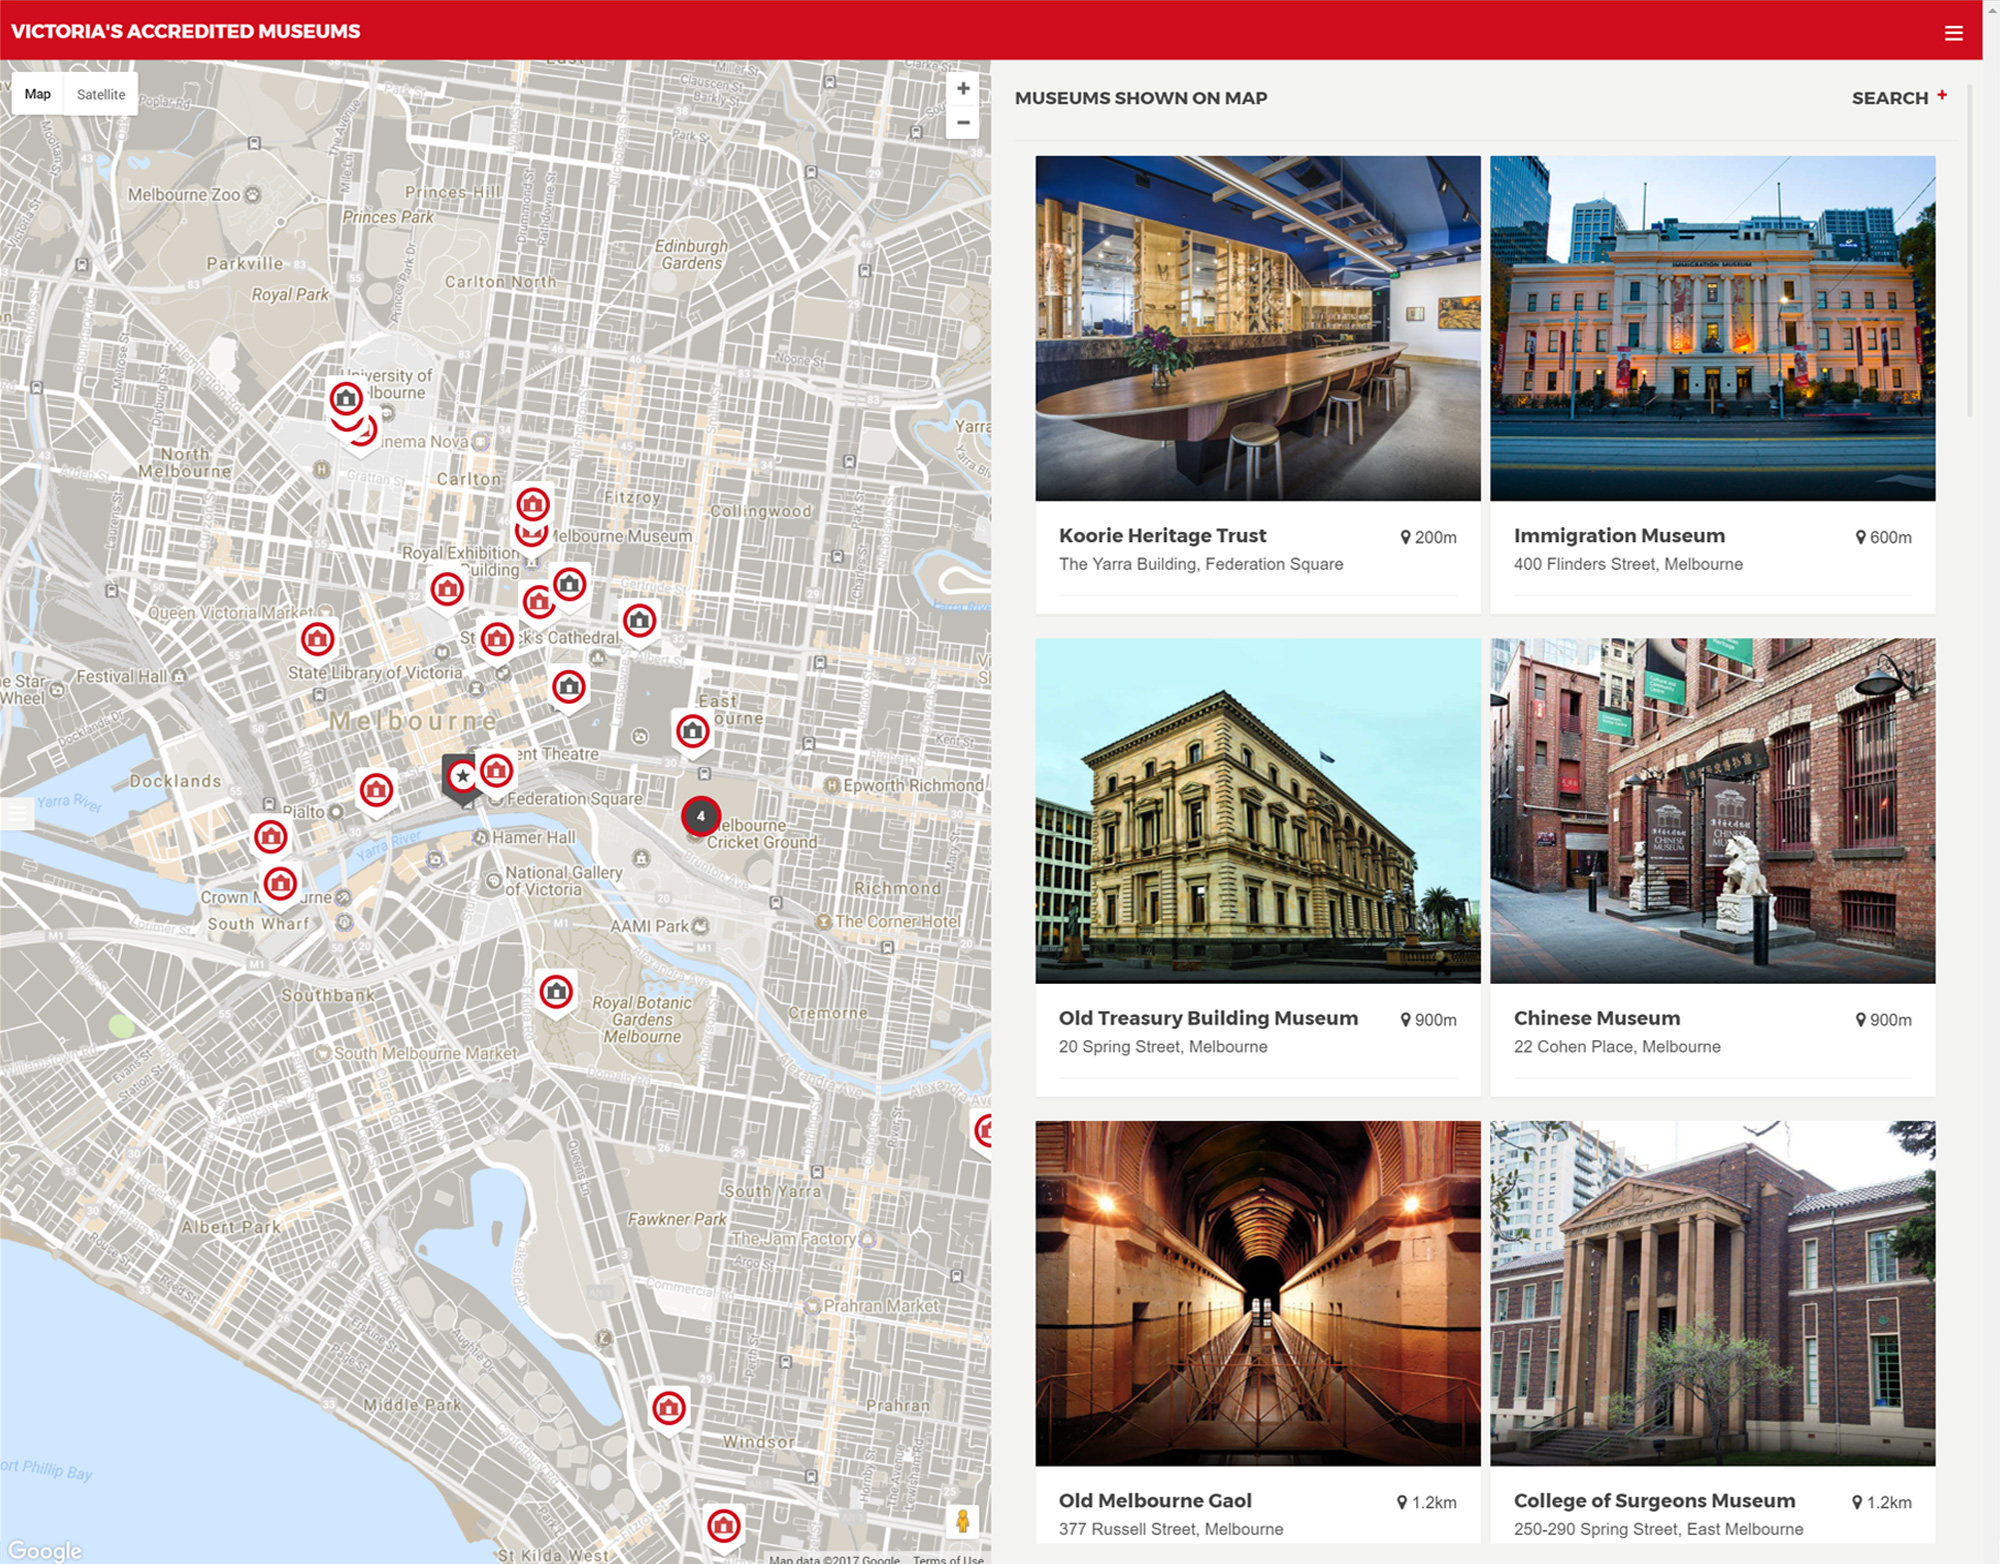 Victoria's Accredited Museums Map